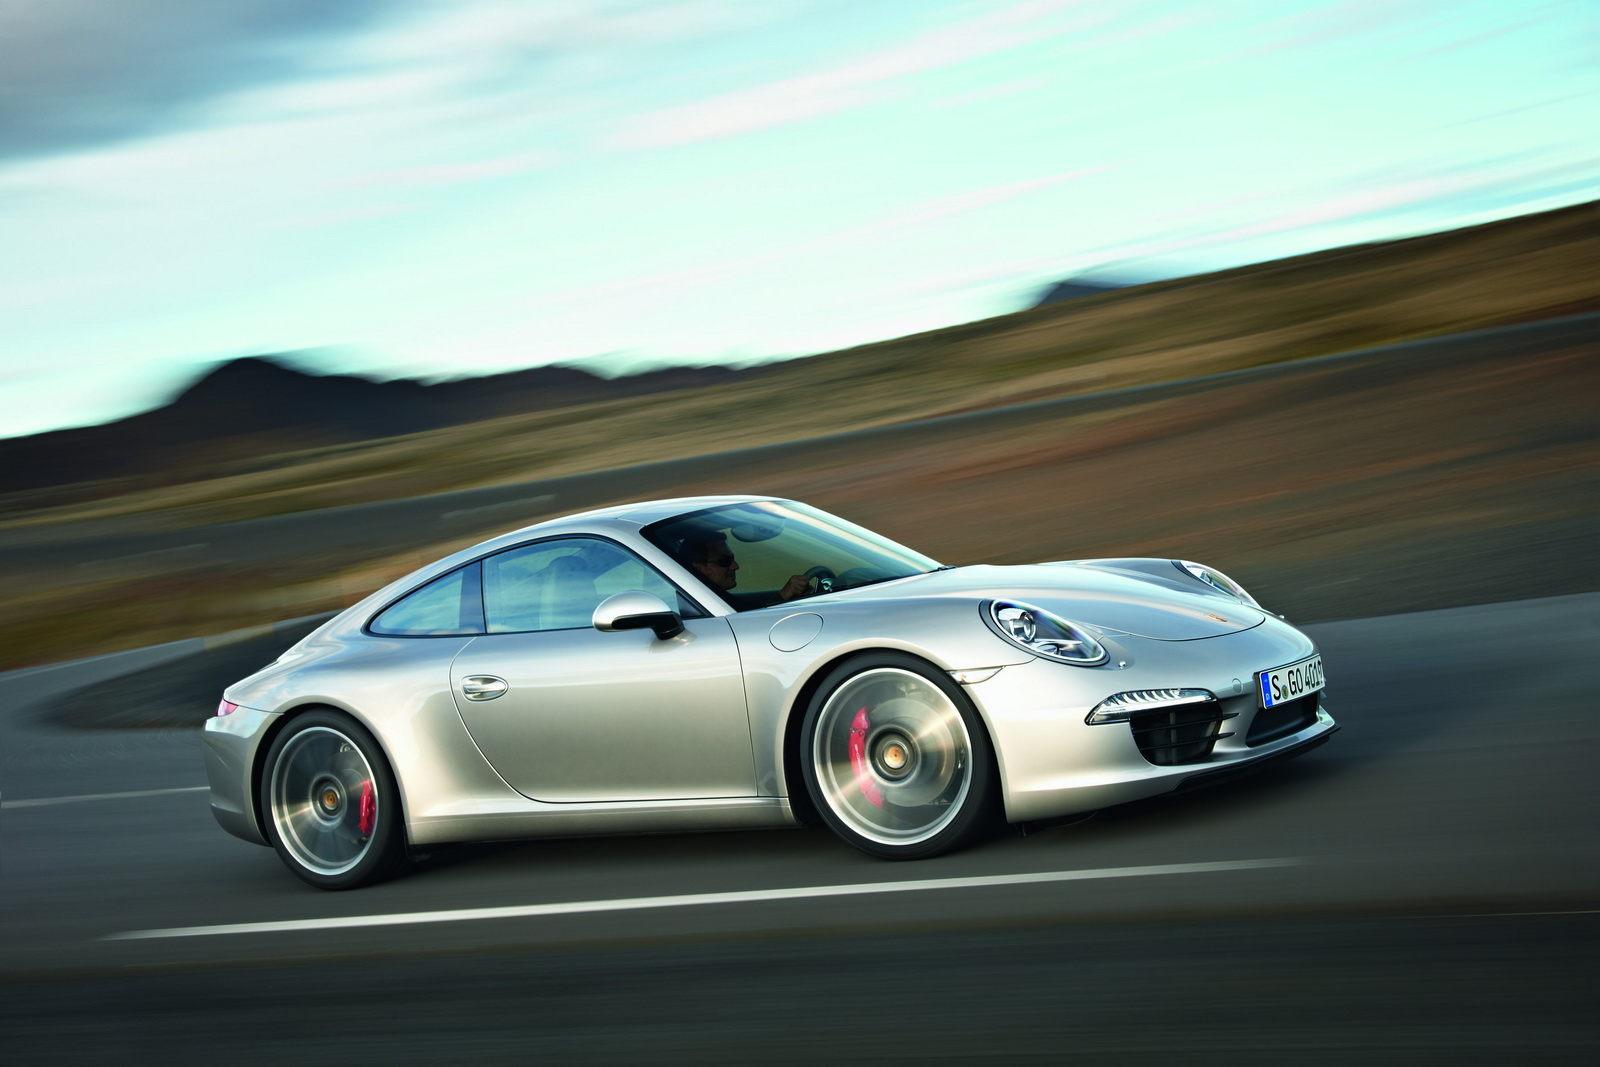 Porsche pictures of porsches : Why I'm Glad All Porsches Look The Same